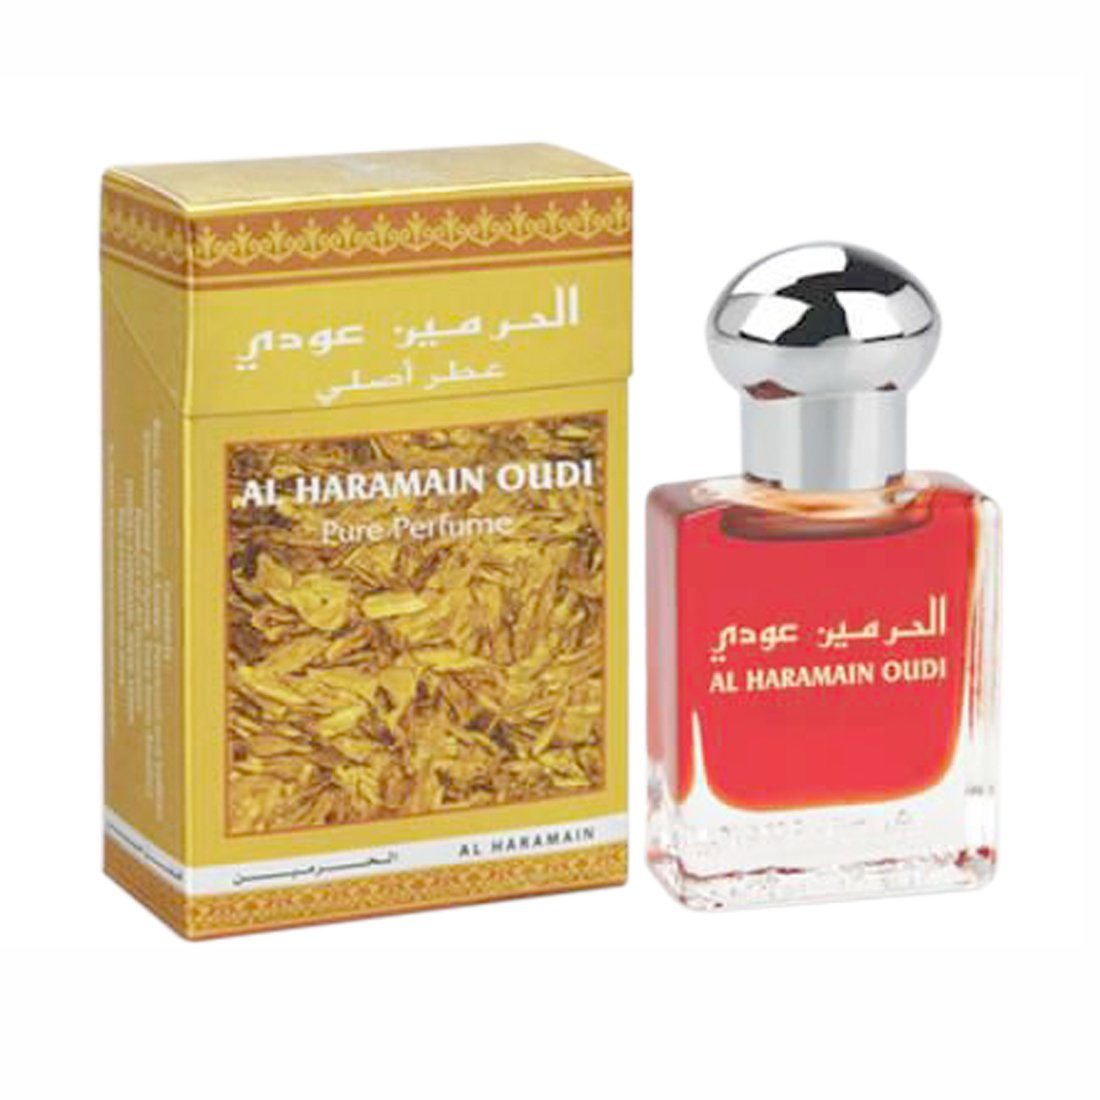 Al Haramain Oudi & Forever Fragrance Pure Original Roll on Perfume Oil Pack of 2 (Attar) - 2 x 15 ml